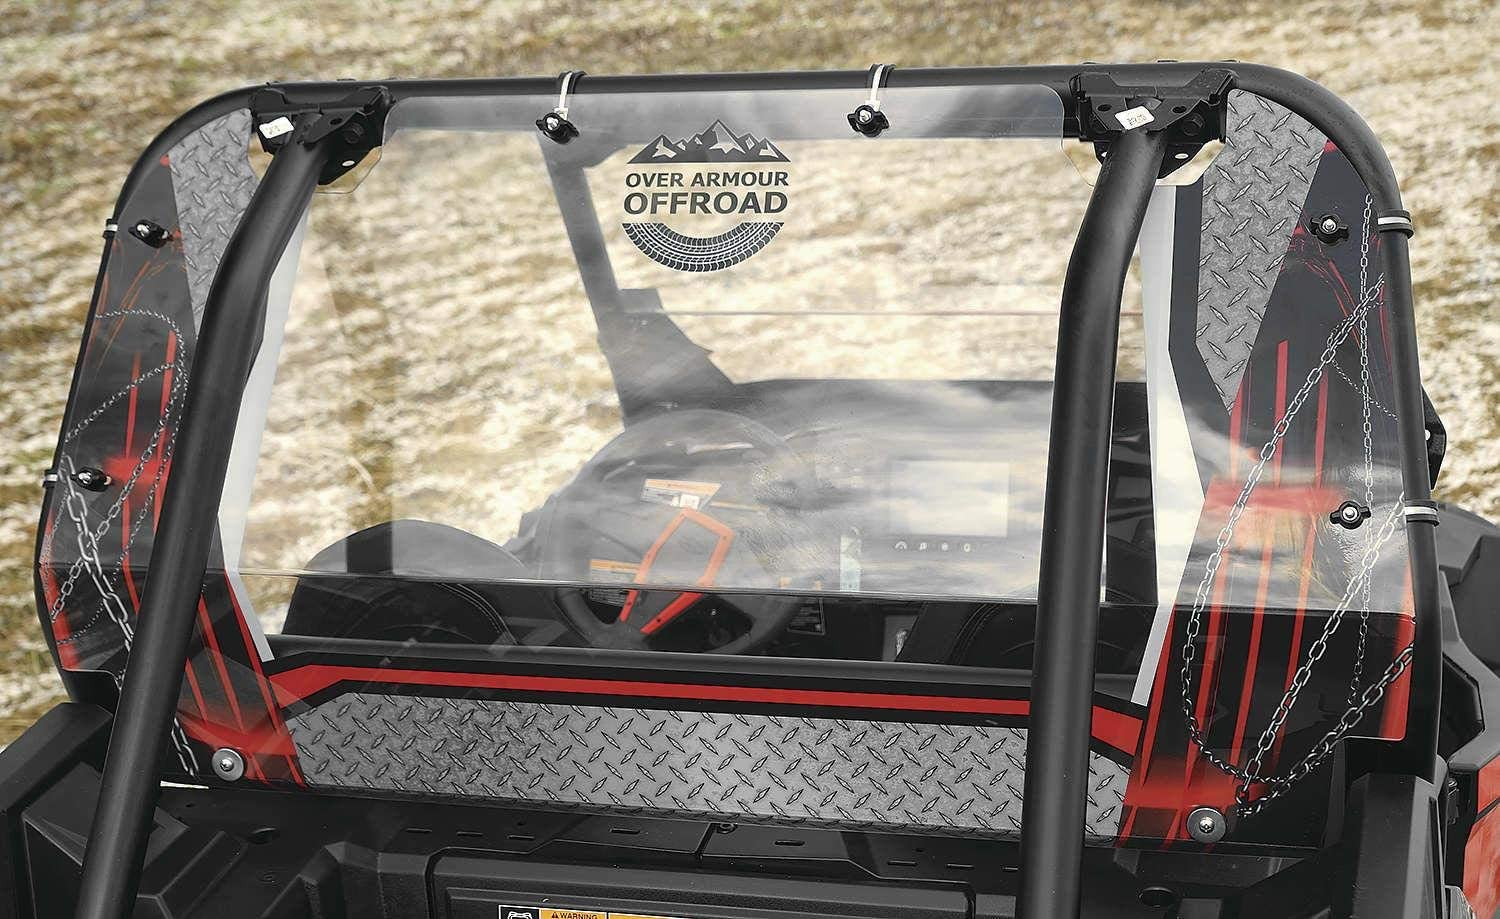 OVER ARMOUR OFFROAD PRINTED REAR PANEL RED XP 4 1000/TURBO 14-18, XP 1000/TURBO 14-18 PO-XPRZR-RD-T